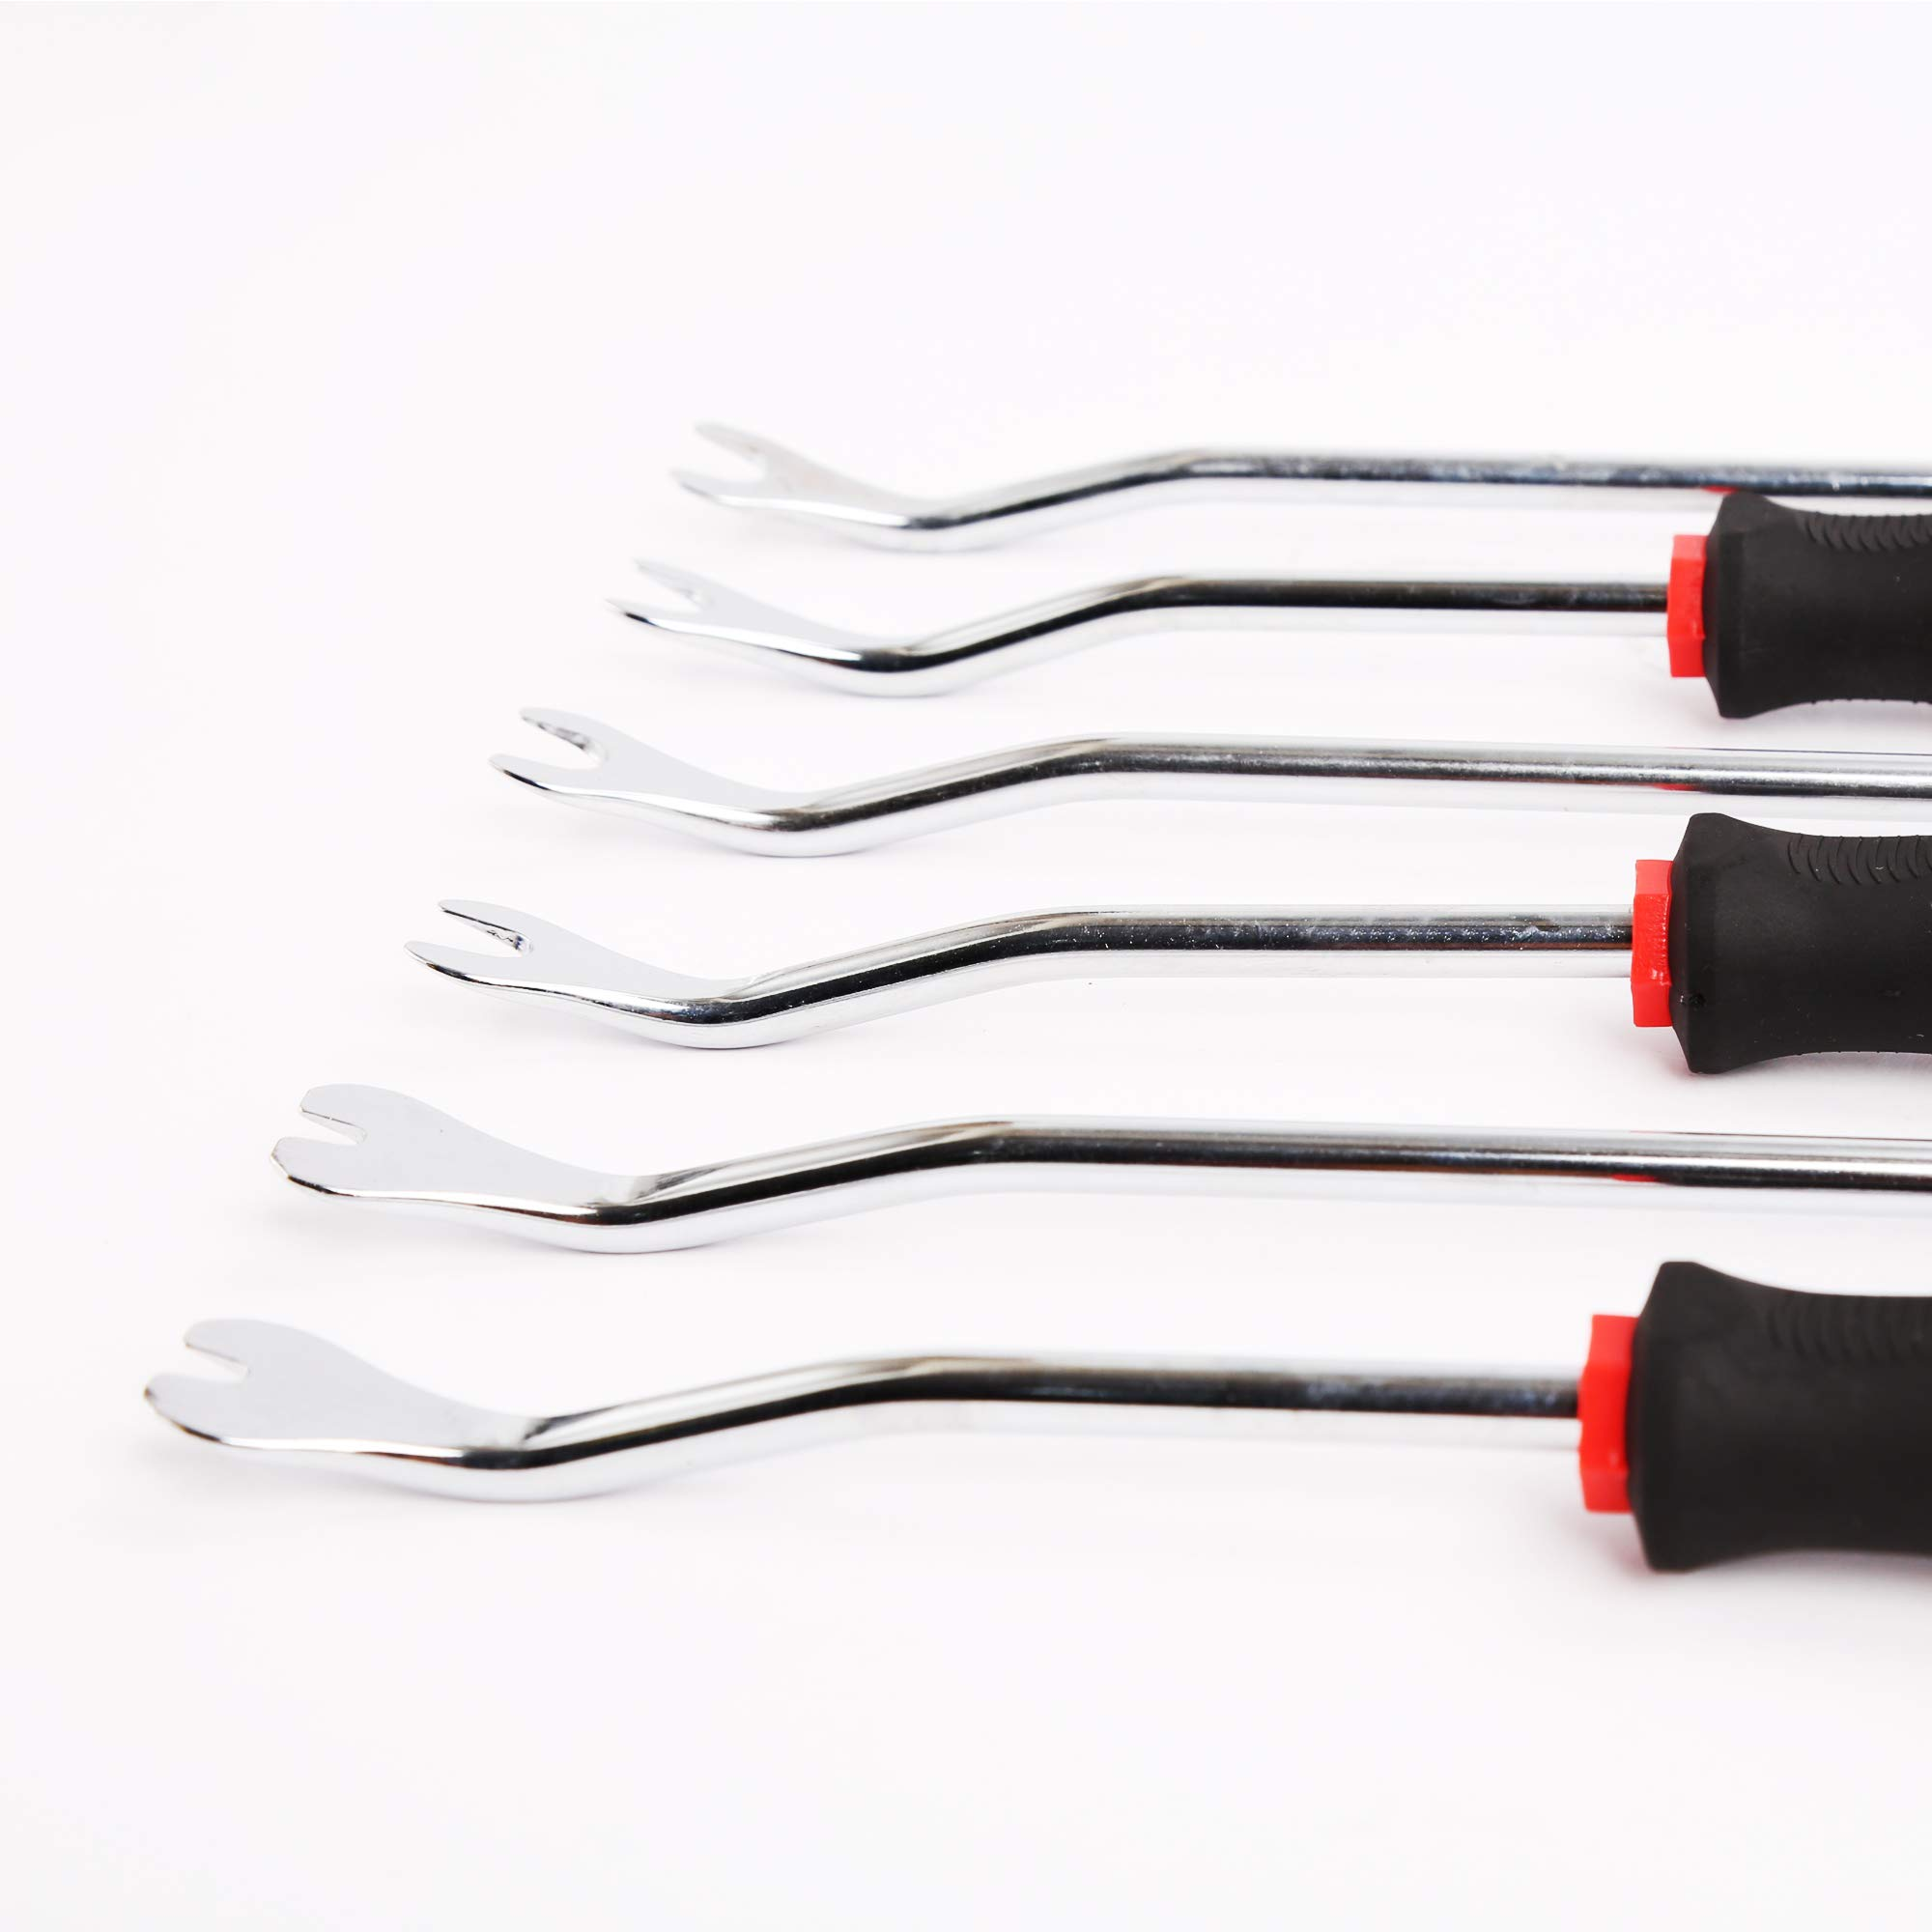 WINTOOLS 6PCS Heavy Duty Car Vehicle Trim Clip Removal Set Upholstery Chrome Car Door Panel by WINTOOLS (Image #2)